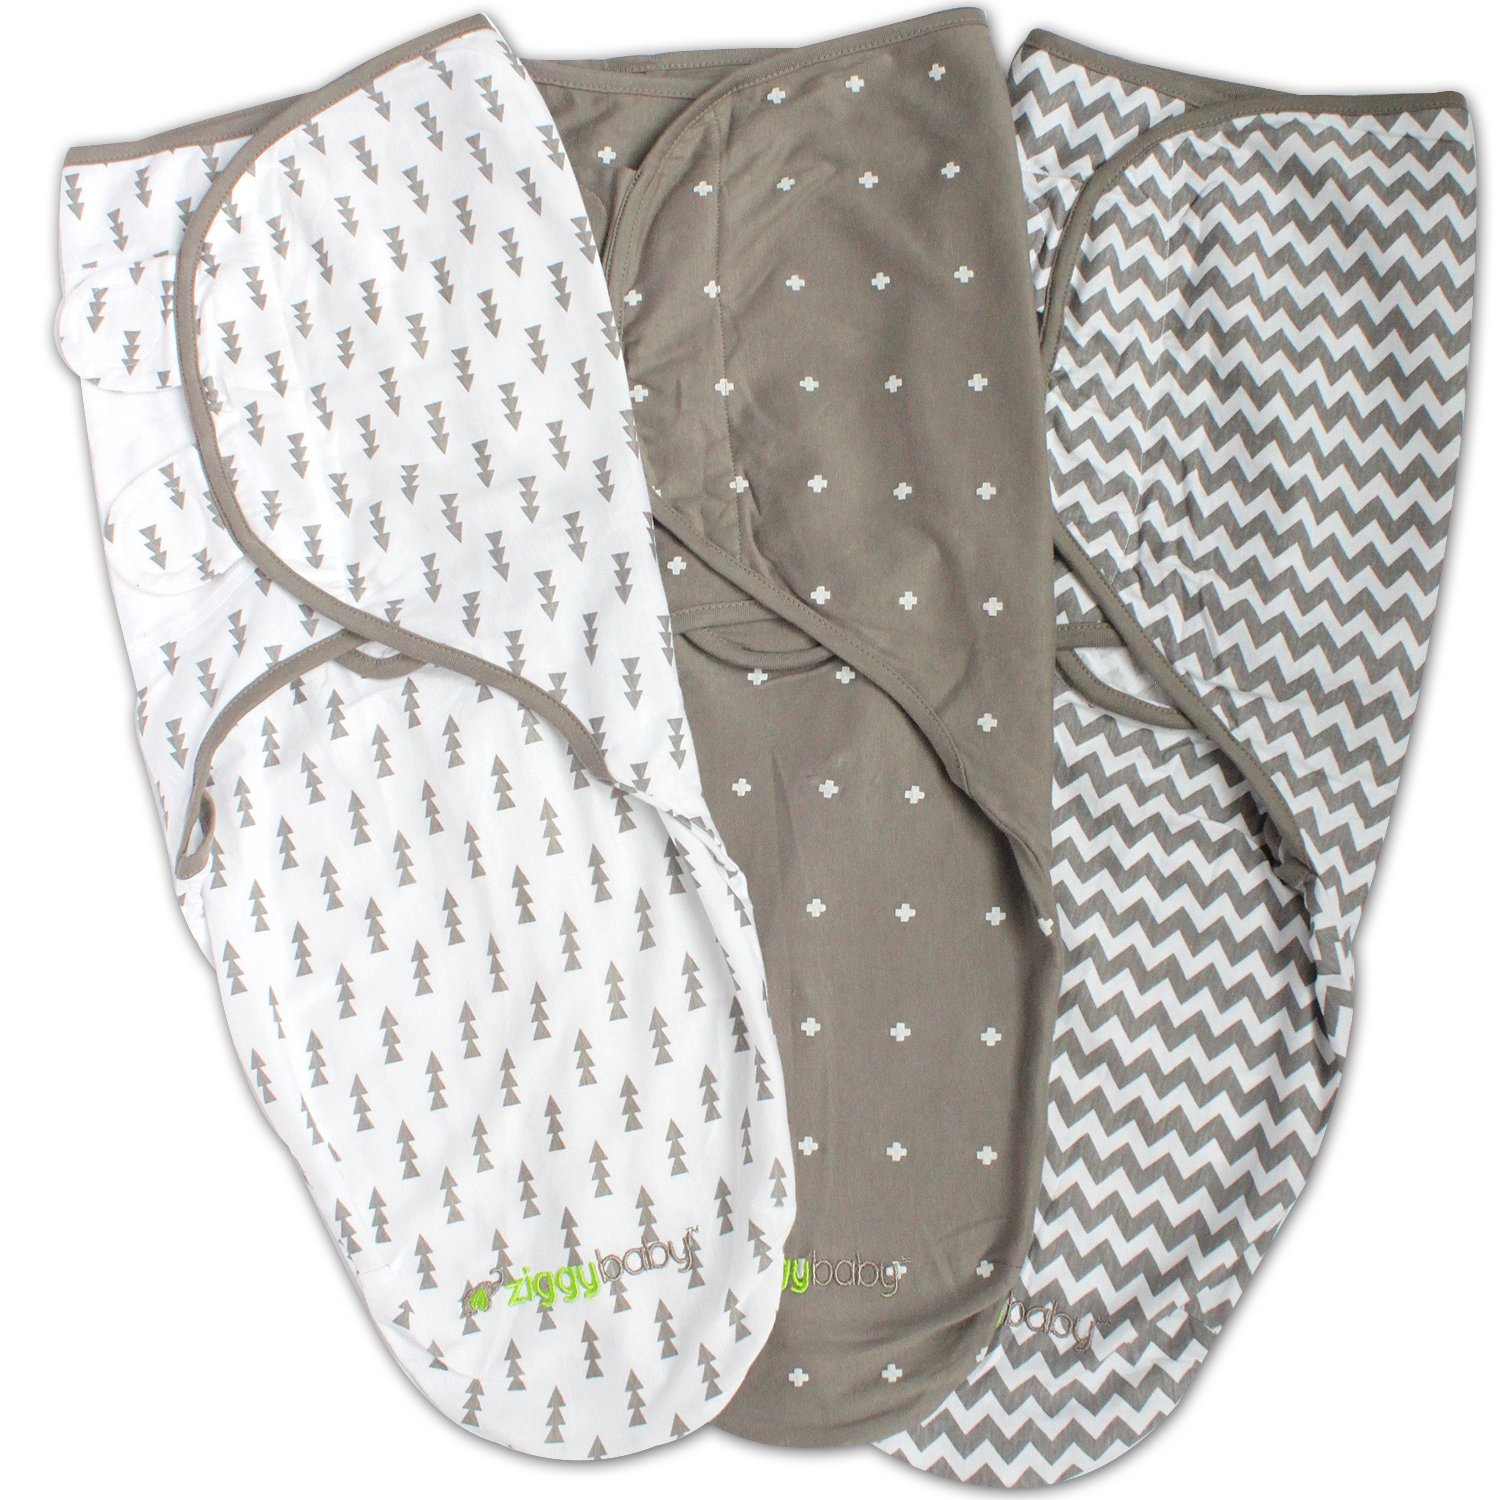 Swaddle Blanket, Adjustable Infant Baby Wrap Set 3 Pack Soft Cotton in Grey by Ziggy Baby